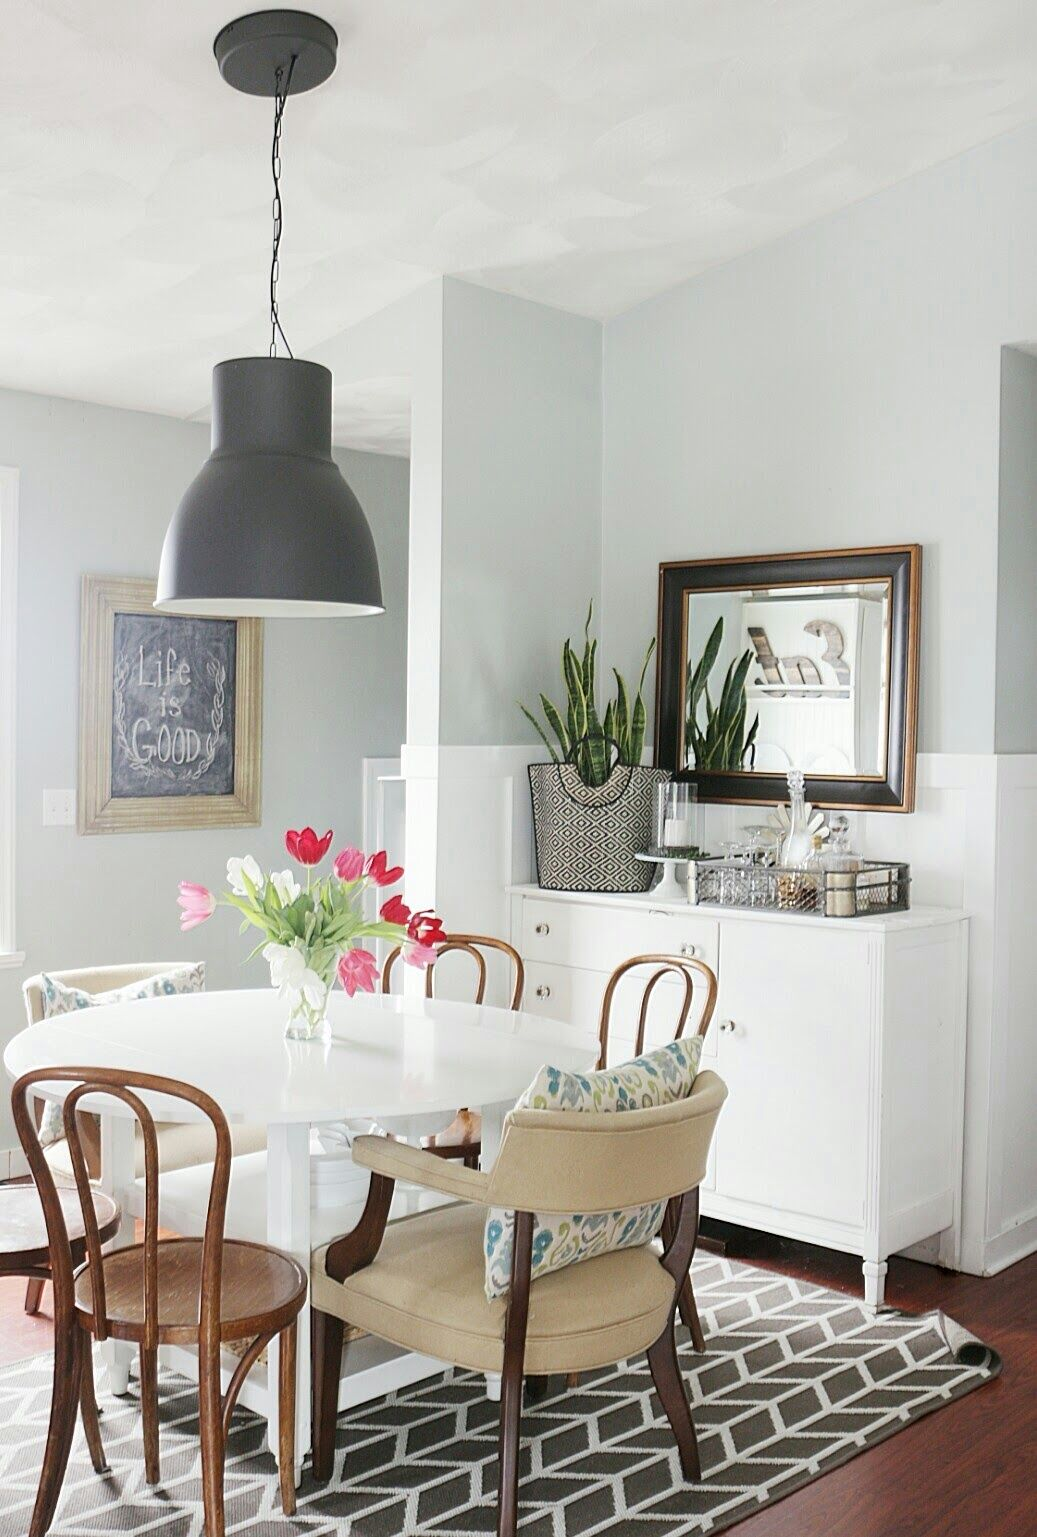 Through The Years: Kitchen/Dining Area Evolution   Dining ... on Living Room Wall Sconce Ideas For Dining Area id=86347